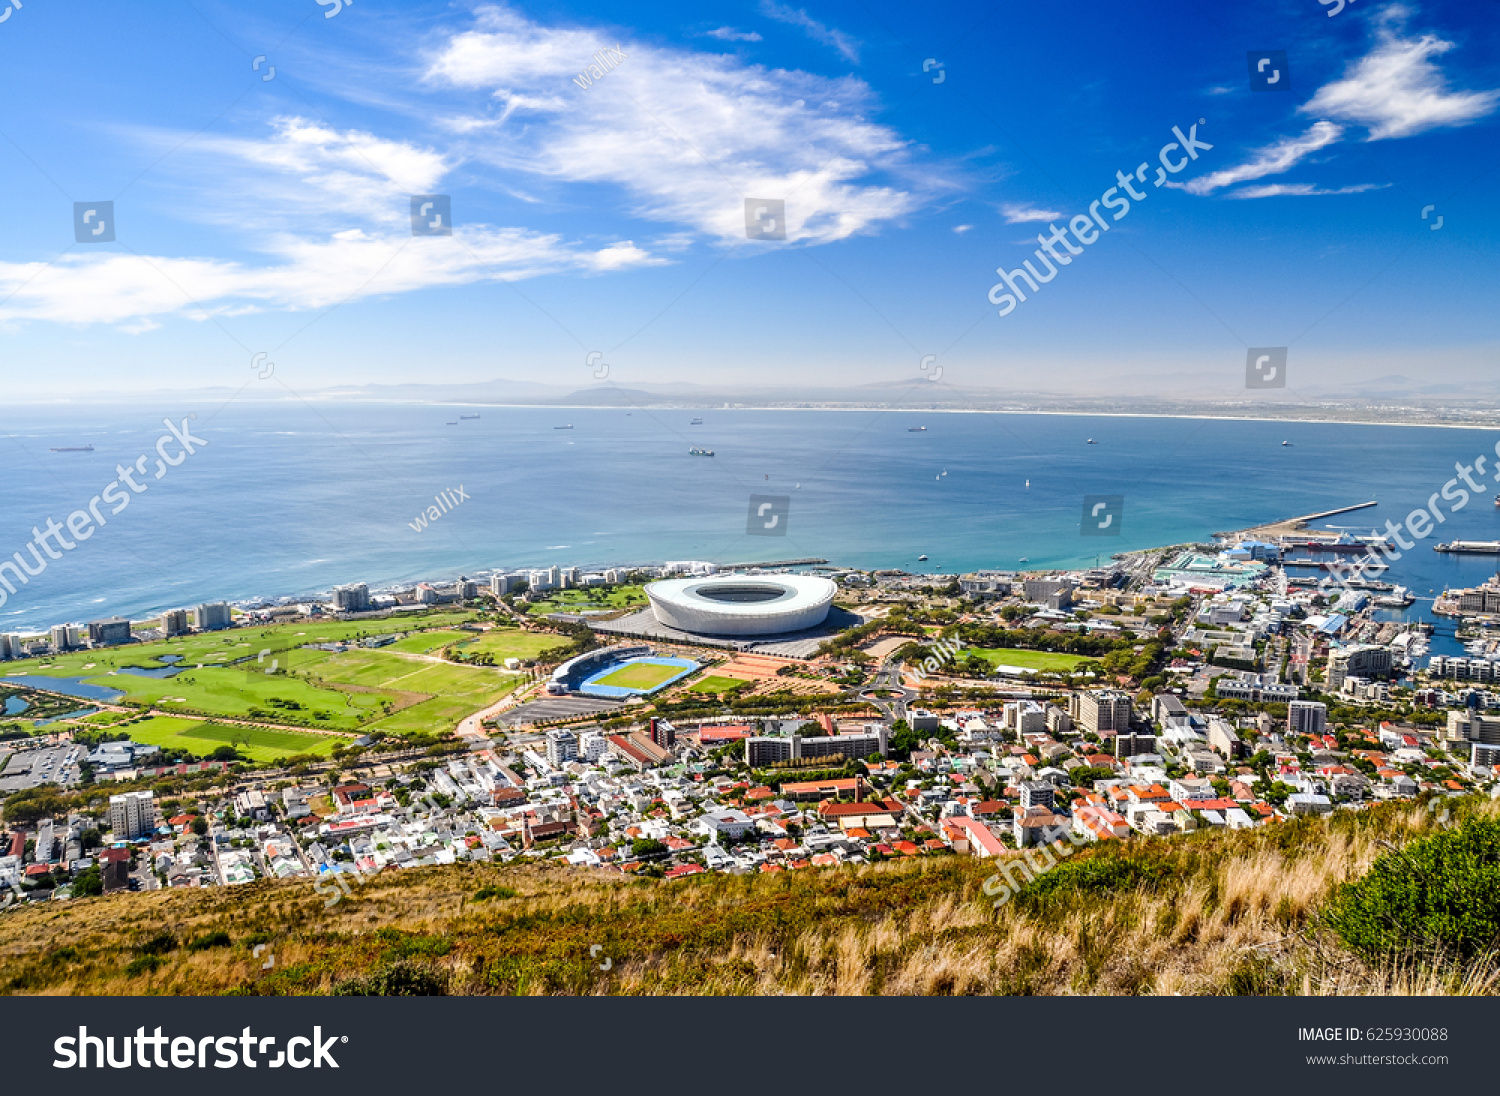 Beautiful view of Mouille Point, Green Point with a football stadium and the V and A (Victoria and Alfred) Waterfront in Cape Town seen from Signal Hill. Sunny day with a few clouds. South Africa.  #625930088